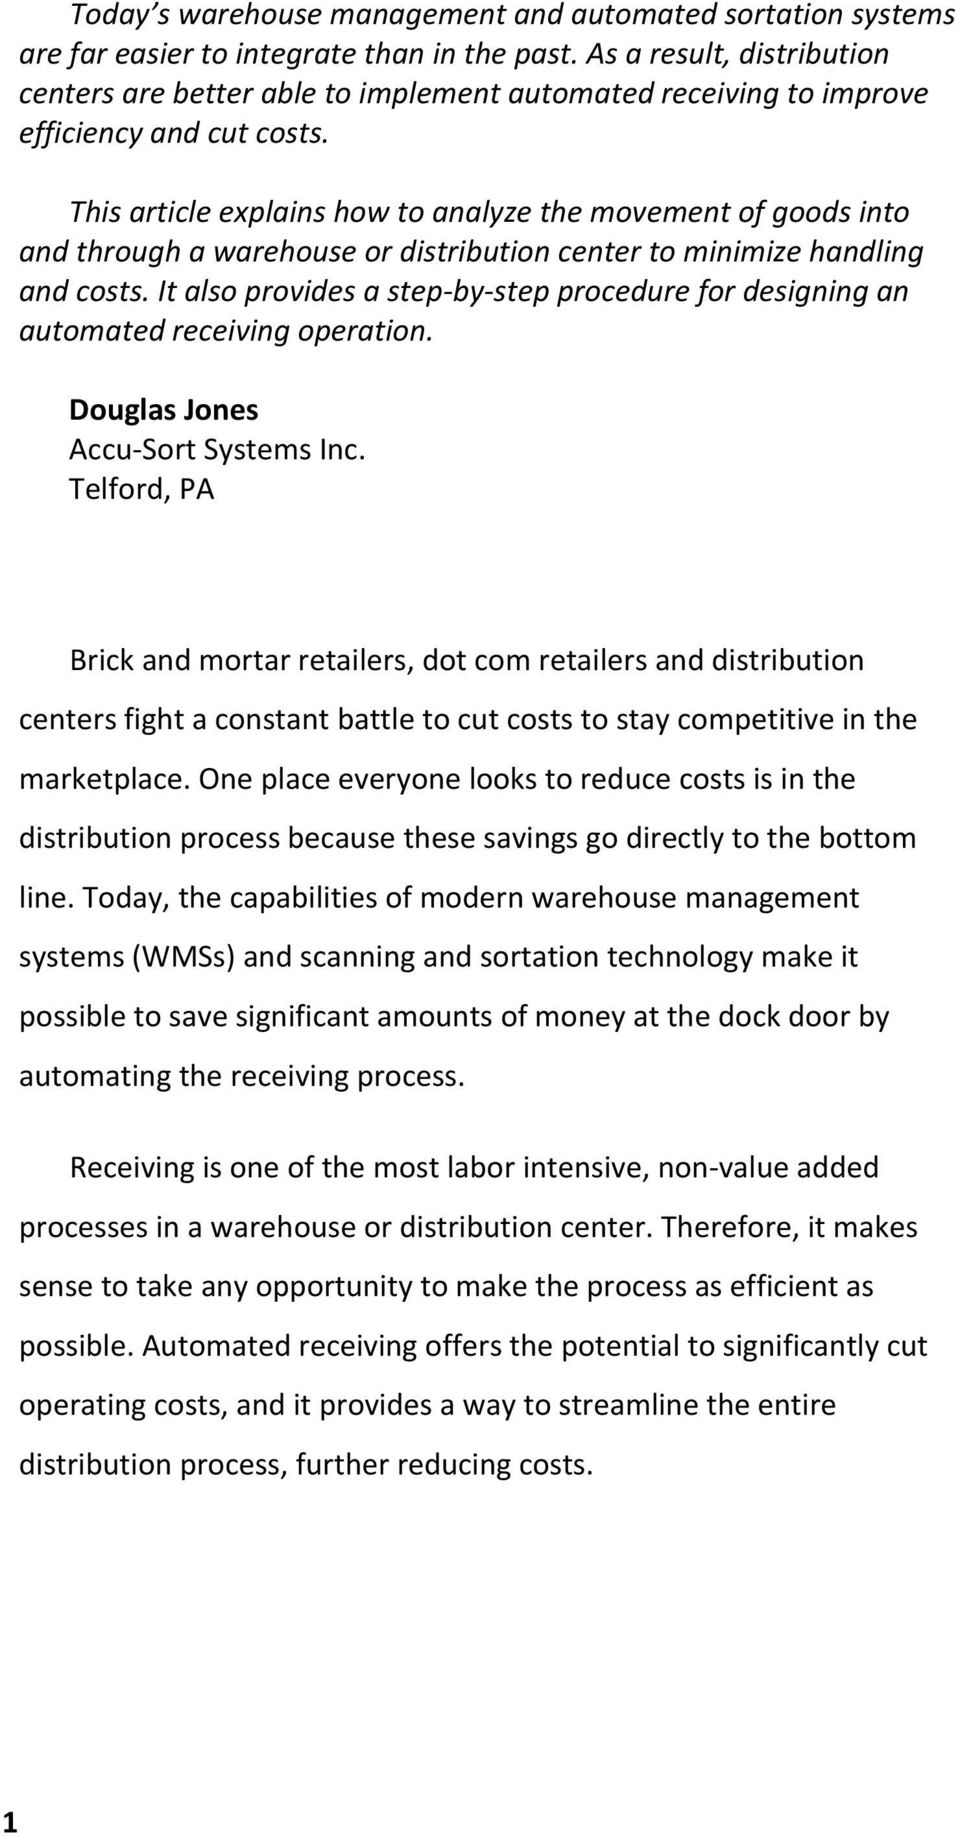 Automated Receiving  Saving Money at the Dock Door  Page 8 - PDF